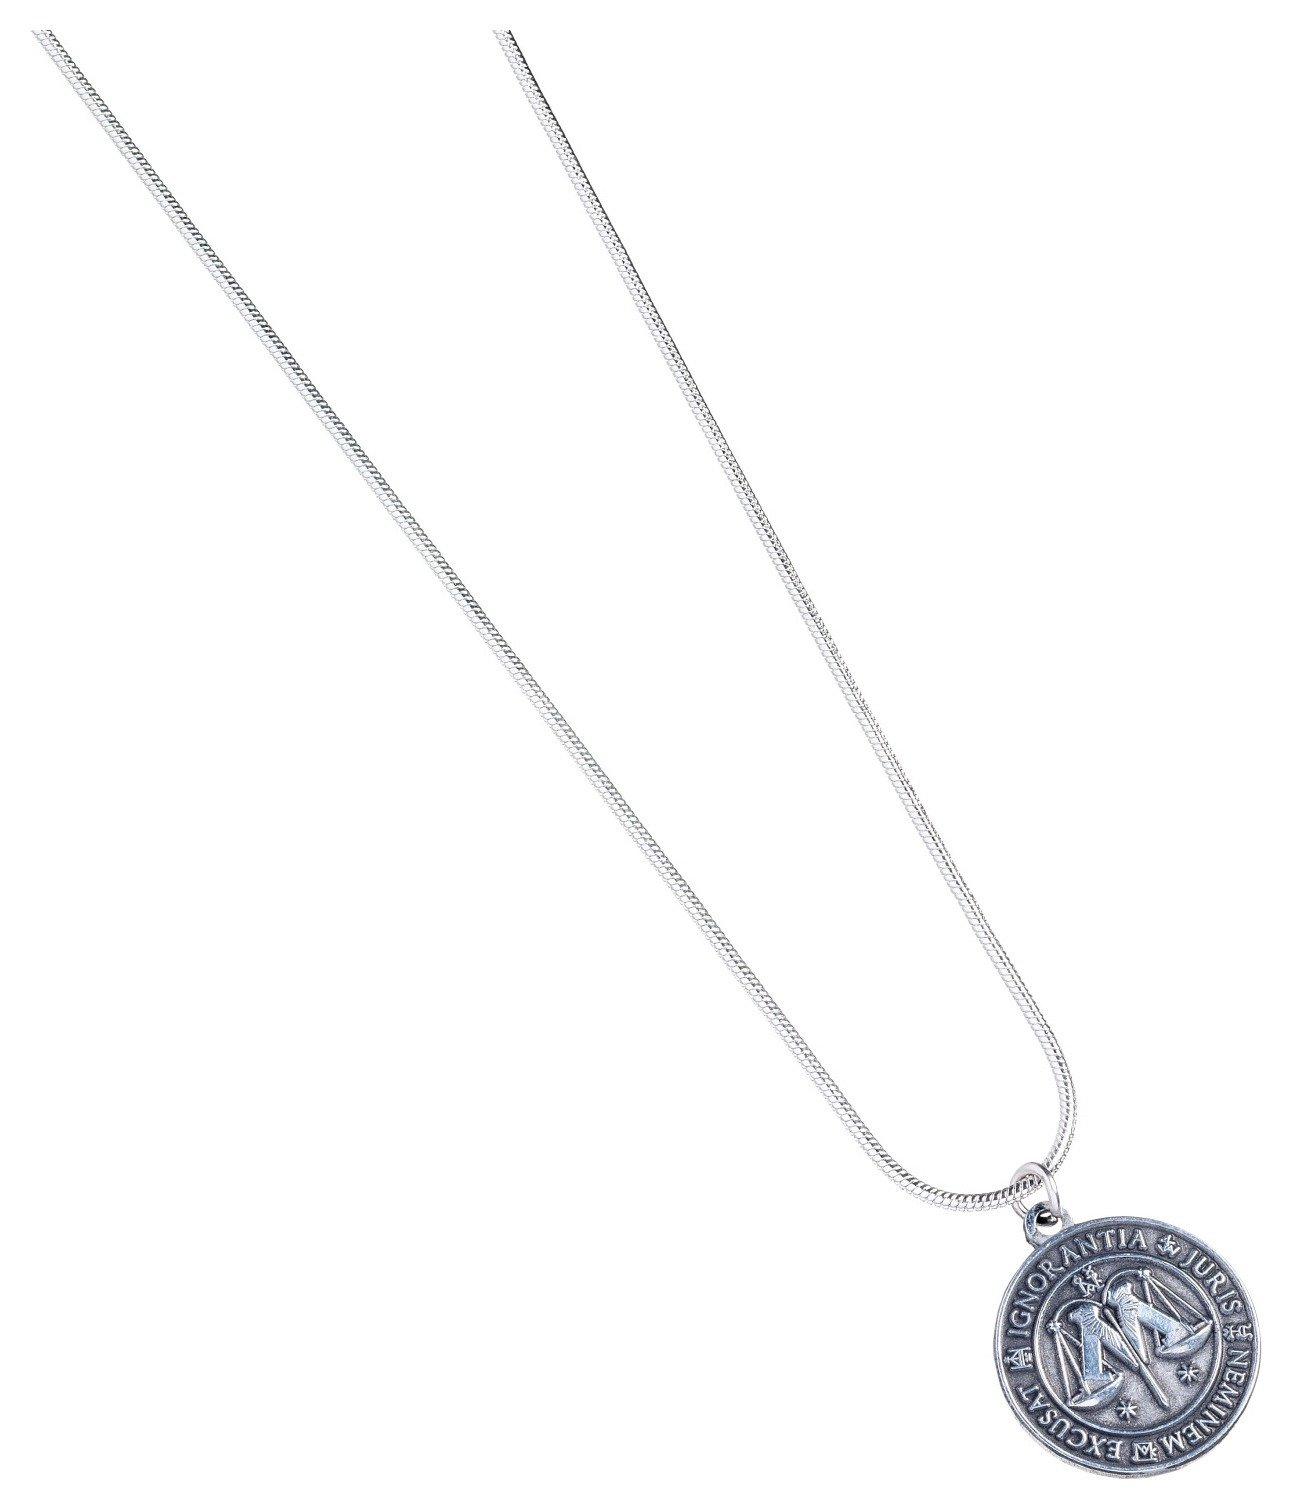 Image of Harry Potter Ministry of Magic Pendant